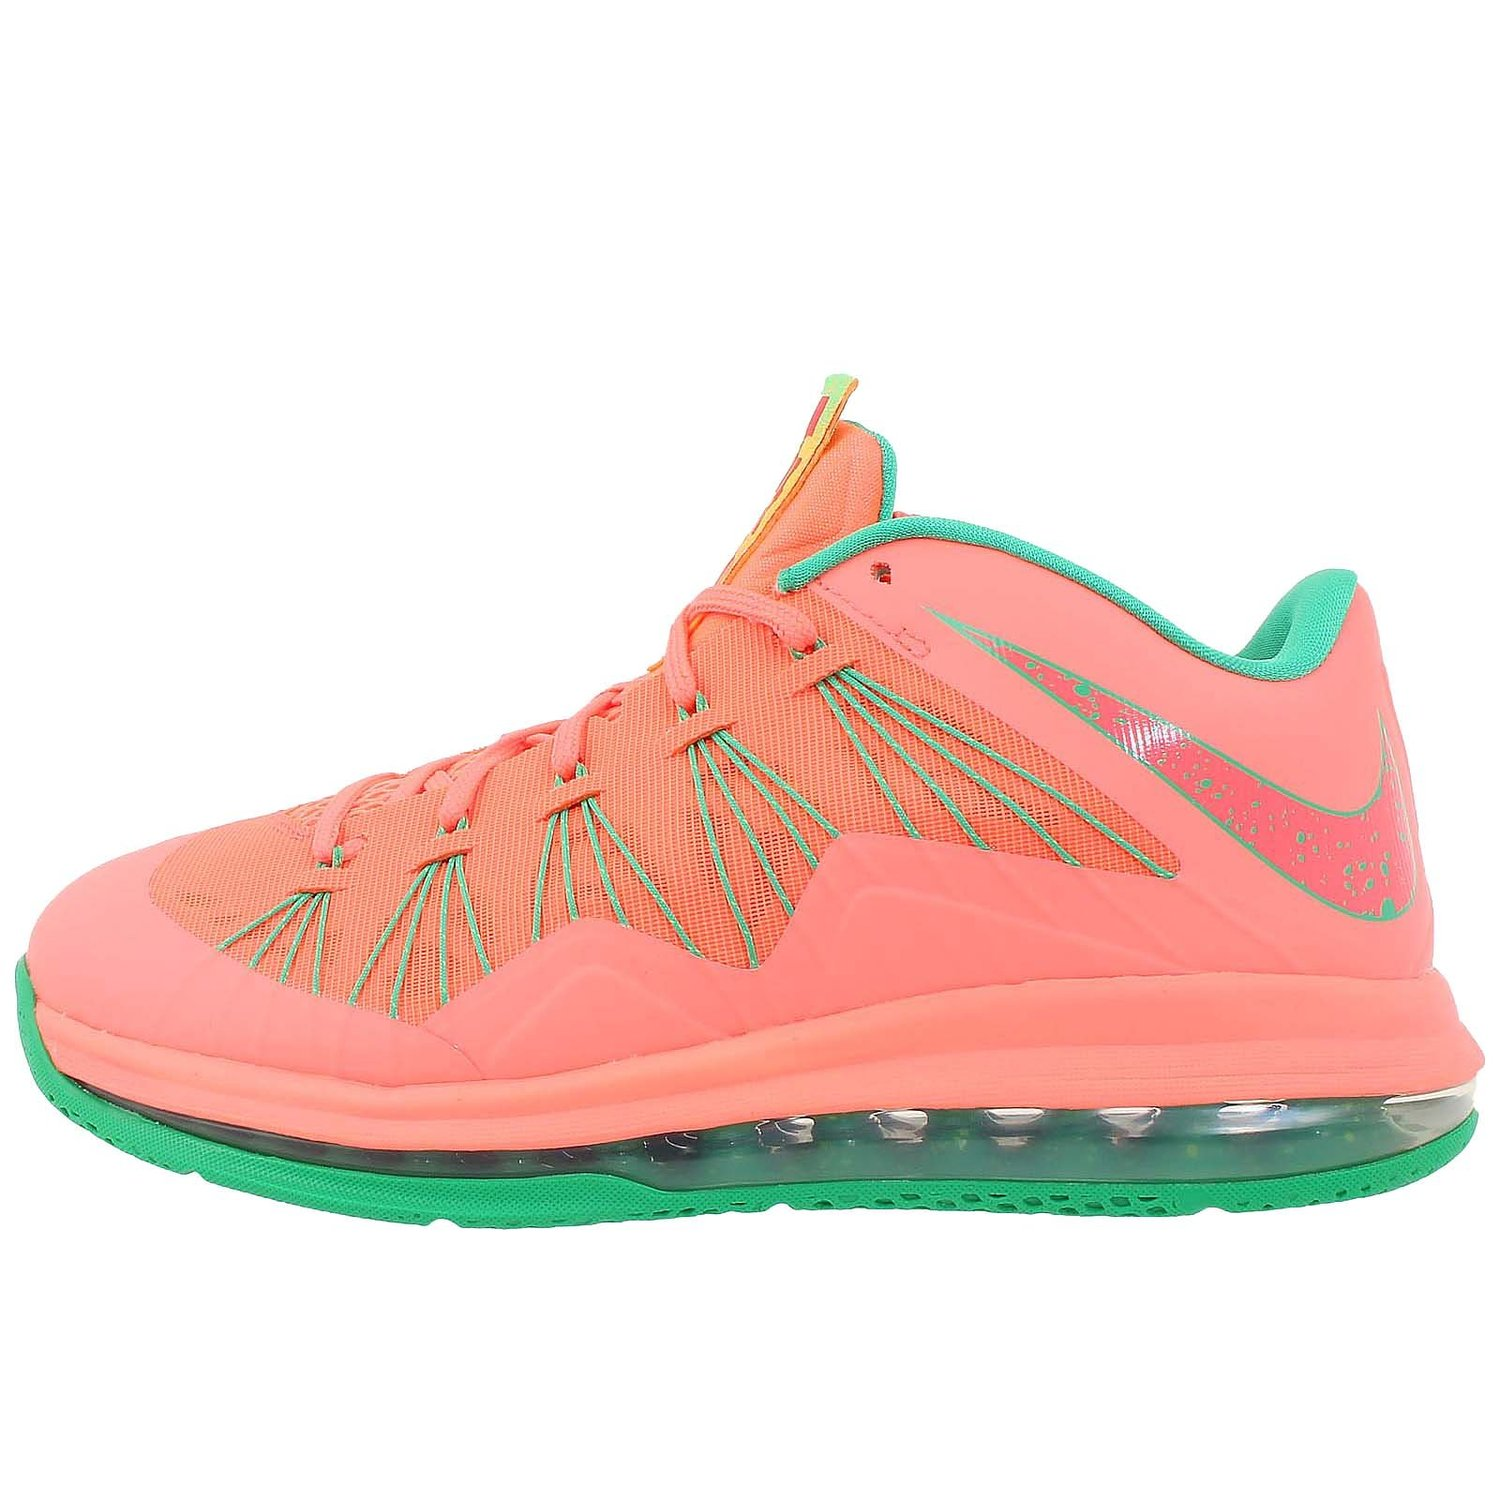 huge discount f378b 8d416 nike air max lebron X low mens basketball trainers 579765 801 sneakers shoes  watermelon